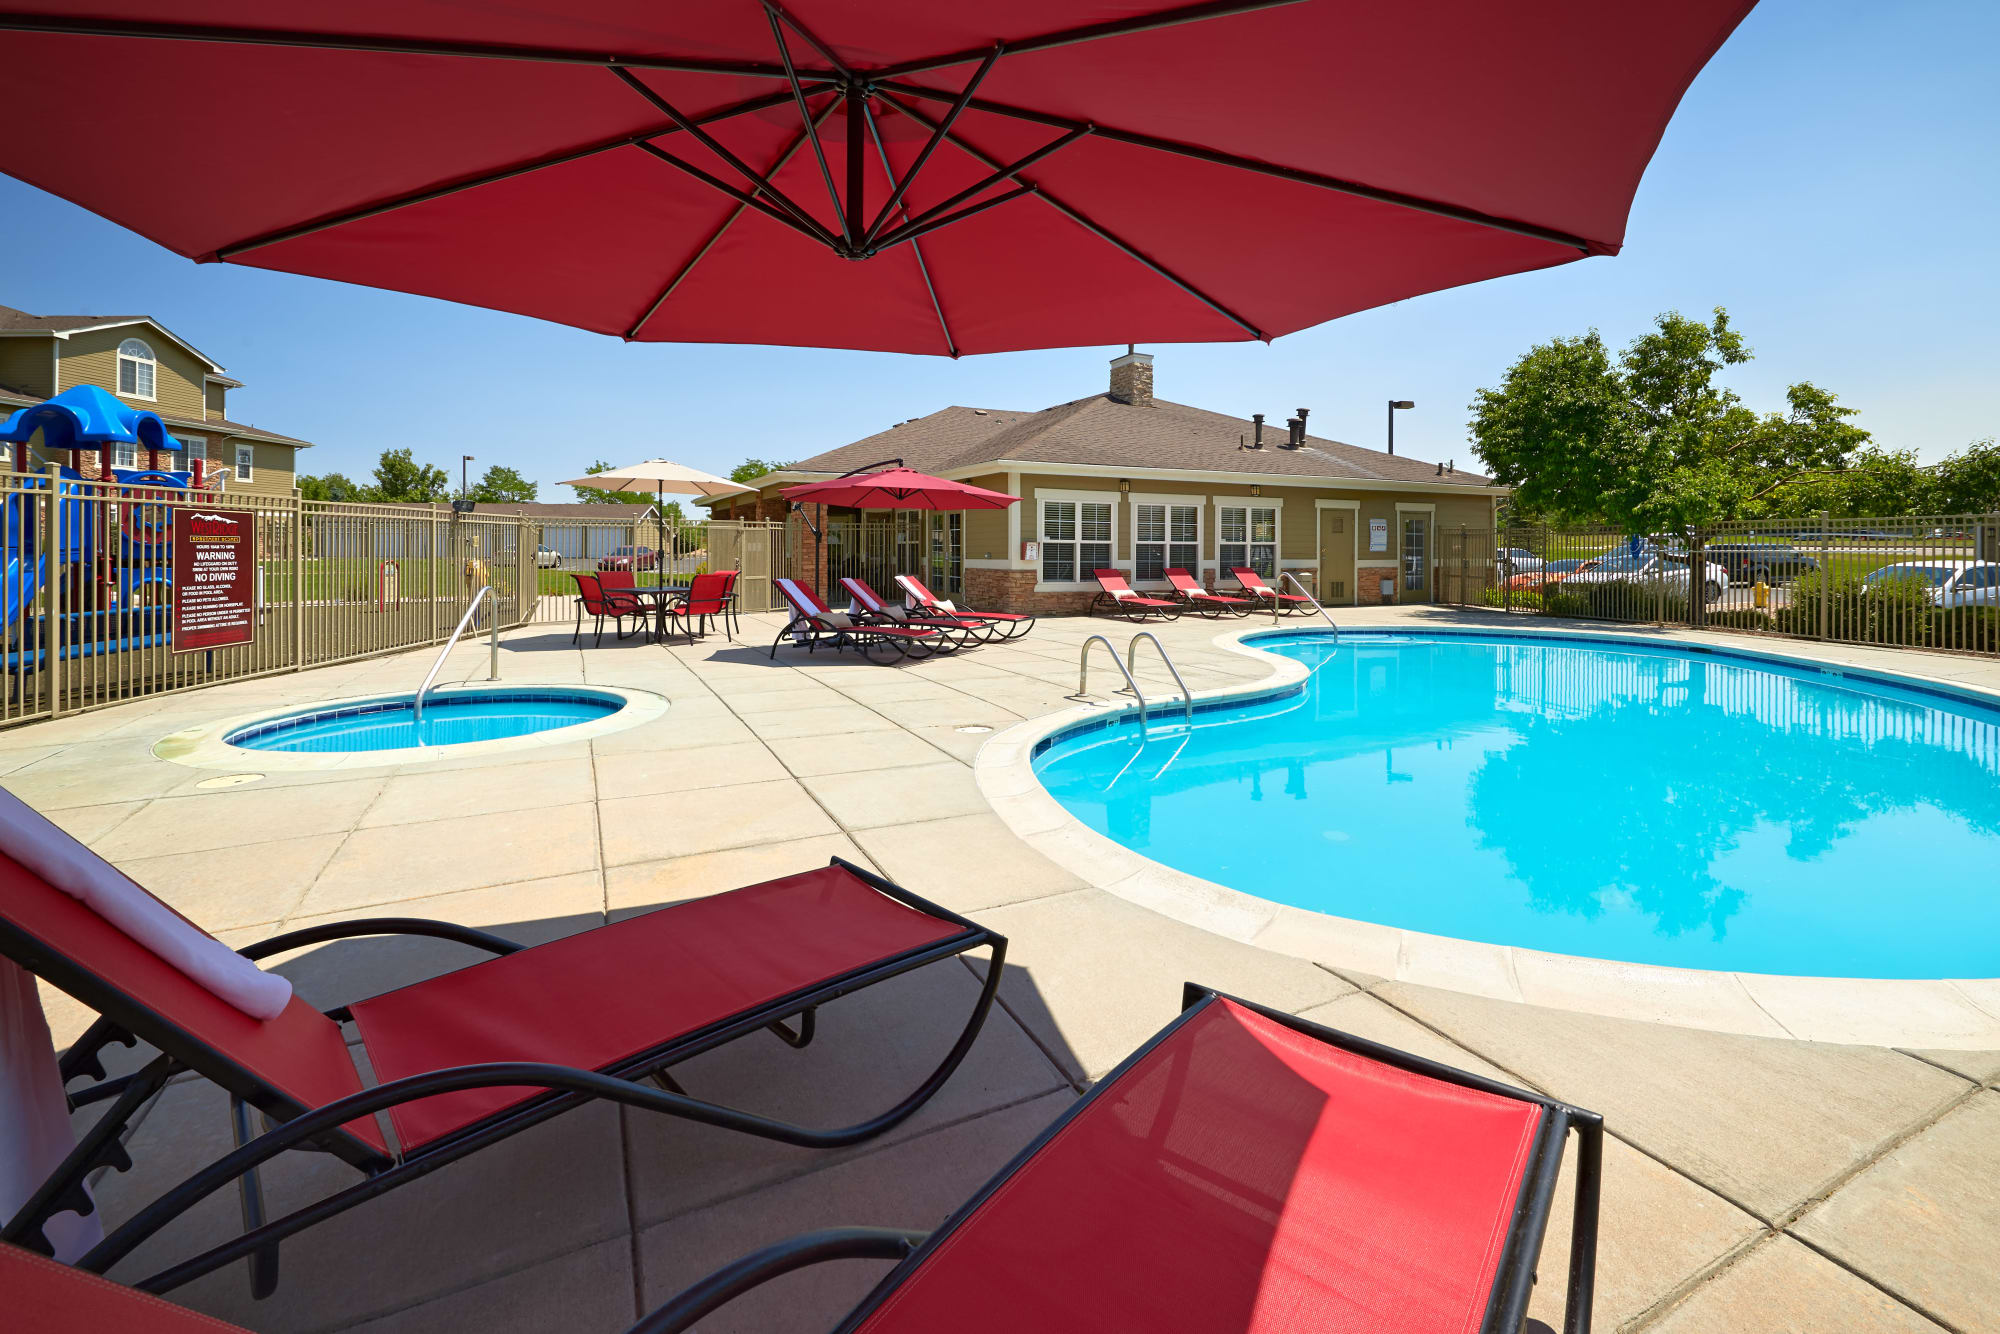 Pool and spa view with lounge chairs and umbrellas at Westridge Apartments in Aurora, CO